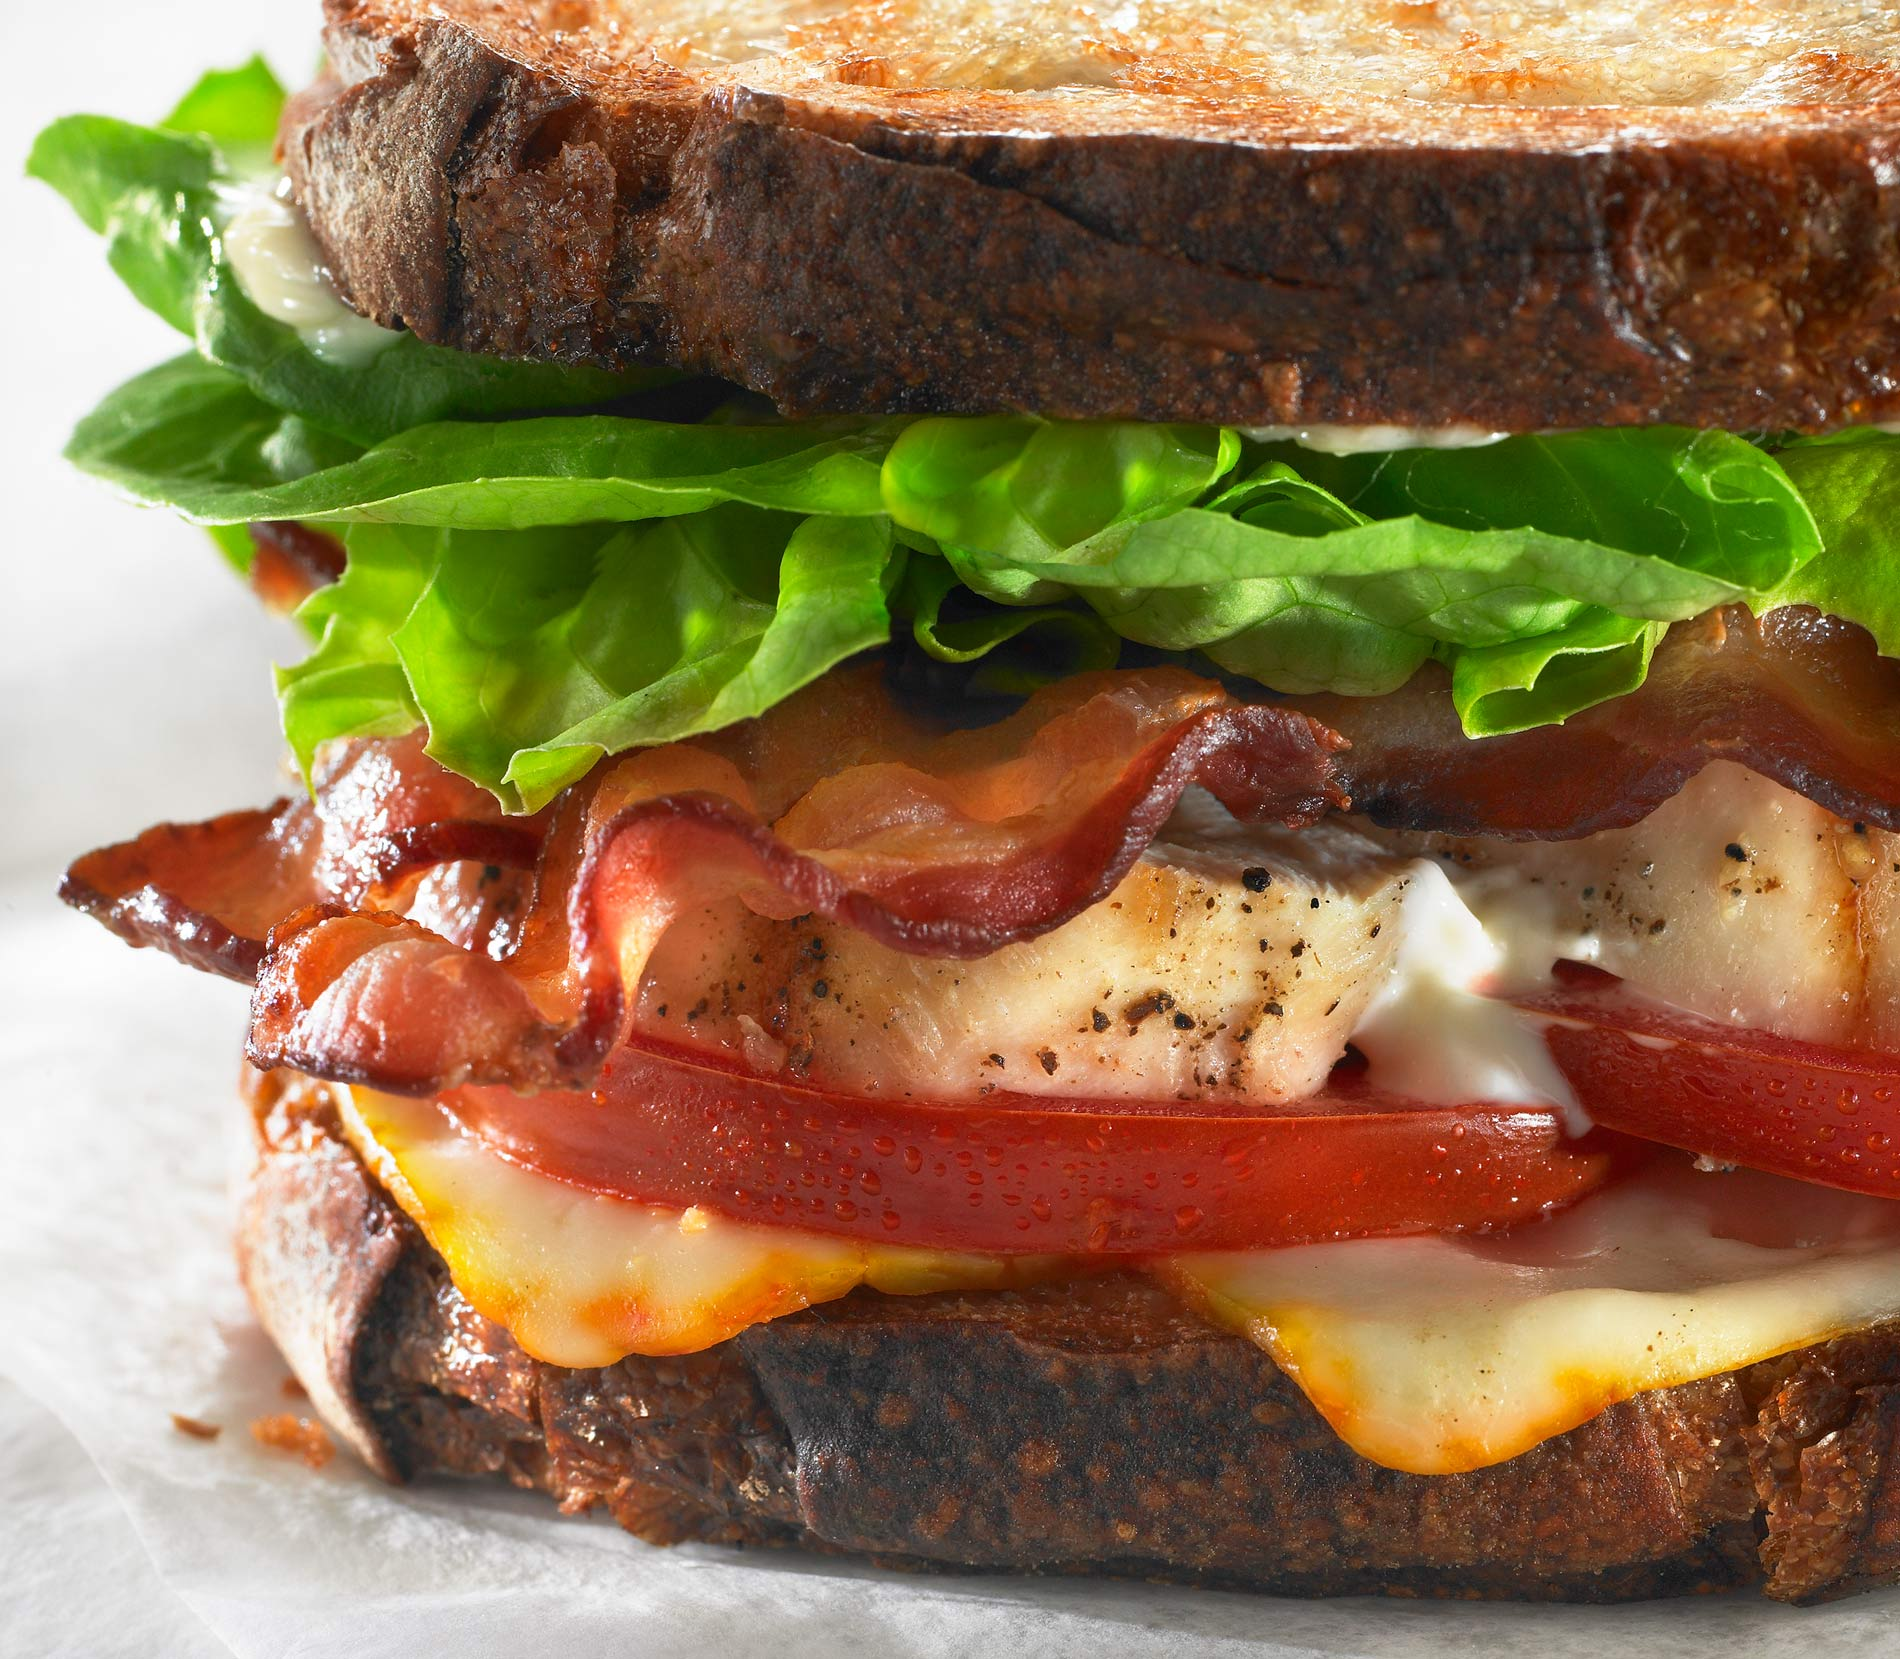 Bacon, lettuce, Tomato and grilled Chicken Sandwich shot For nestle Lean Cuisine CPG Packaging